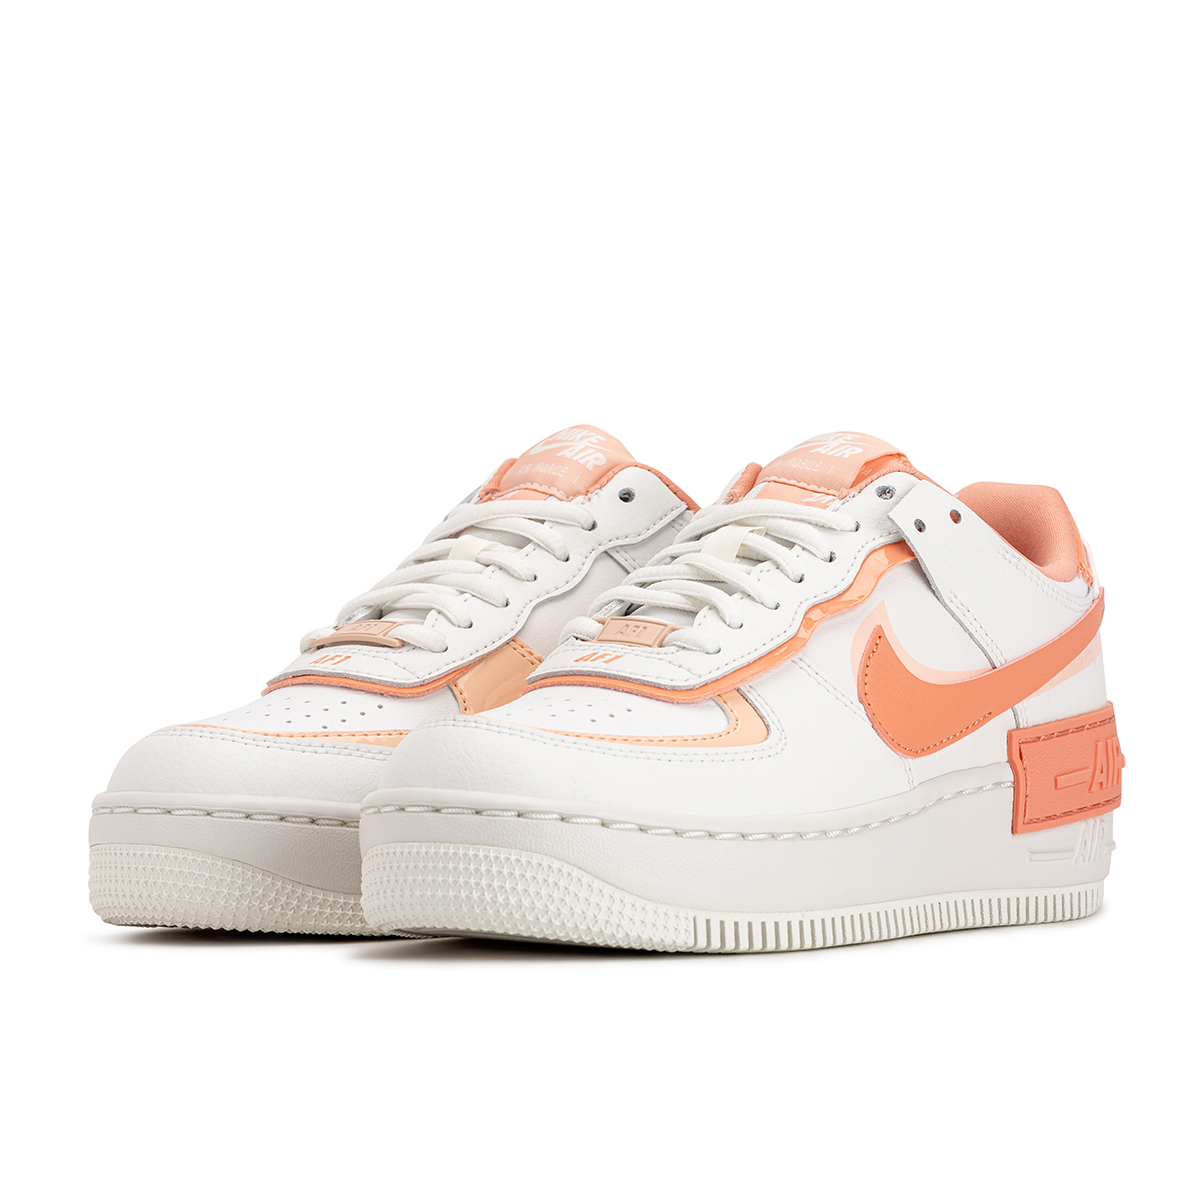 Buy Nike Air Force 1 Shadow Women S Shoes Online Foot Locker Kuwait The nike air force 1 shadow delivers versatility in its stylishly distinctive design that allows you to rock this pair on various occasions with a wide variety of outfit ideas. nike air force 1 shadow women s shoes